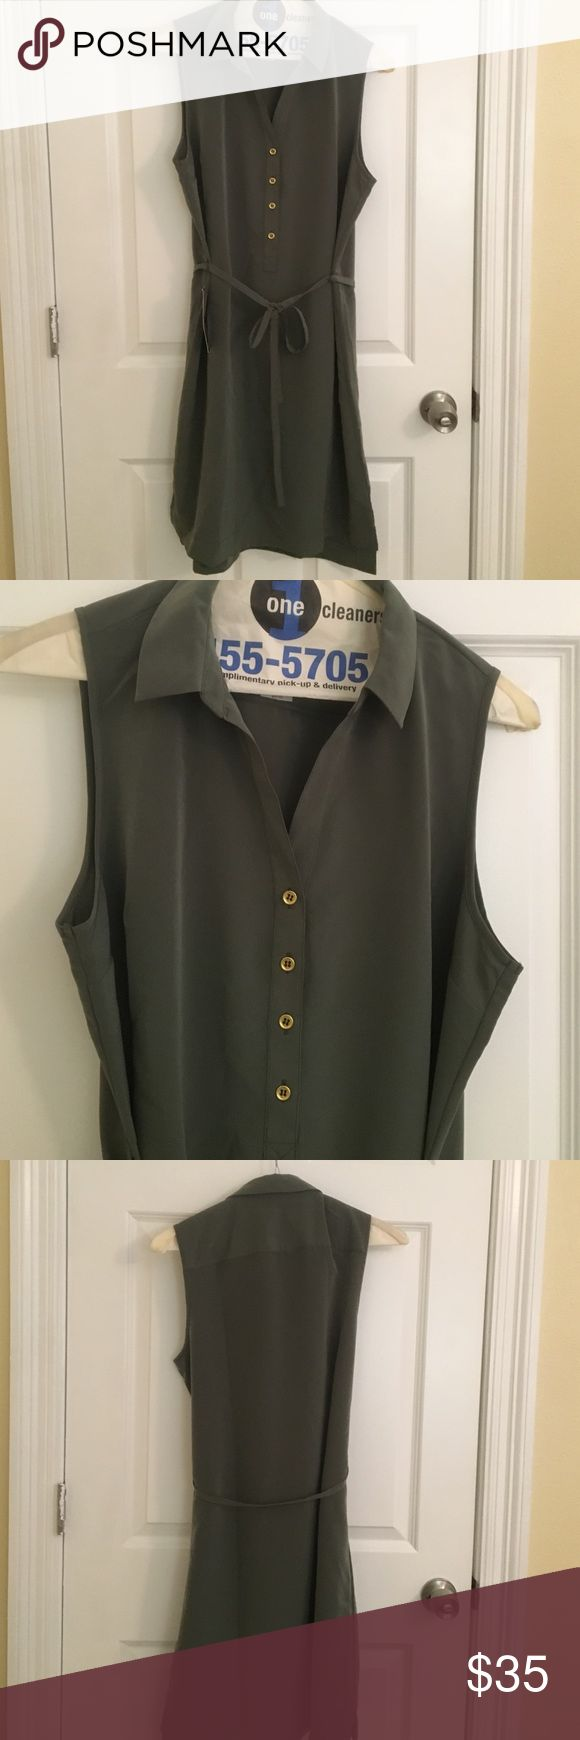 Olive green shirt dress Very cute green shirt dress with gold buttons. Perfect for work! Brand new! The Limited Dresses